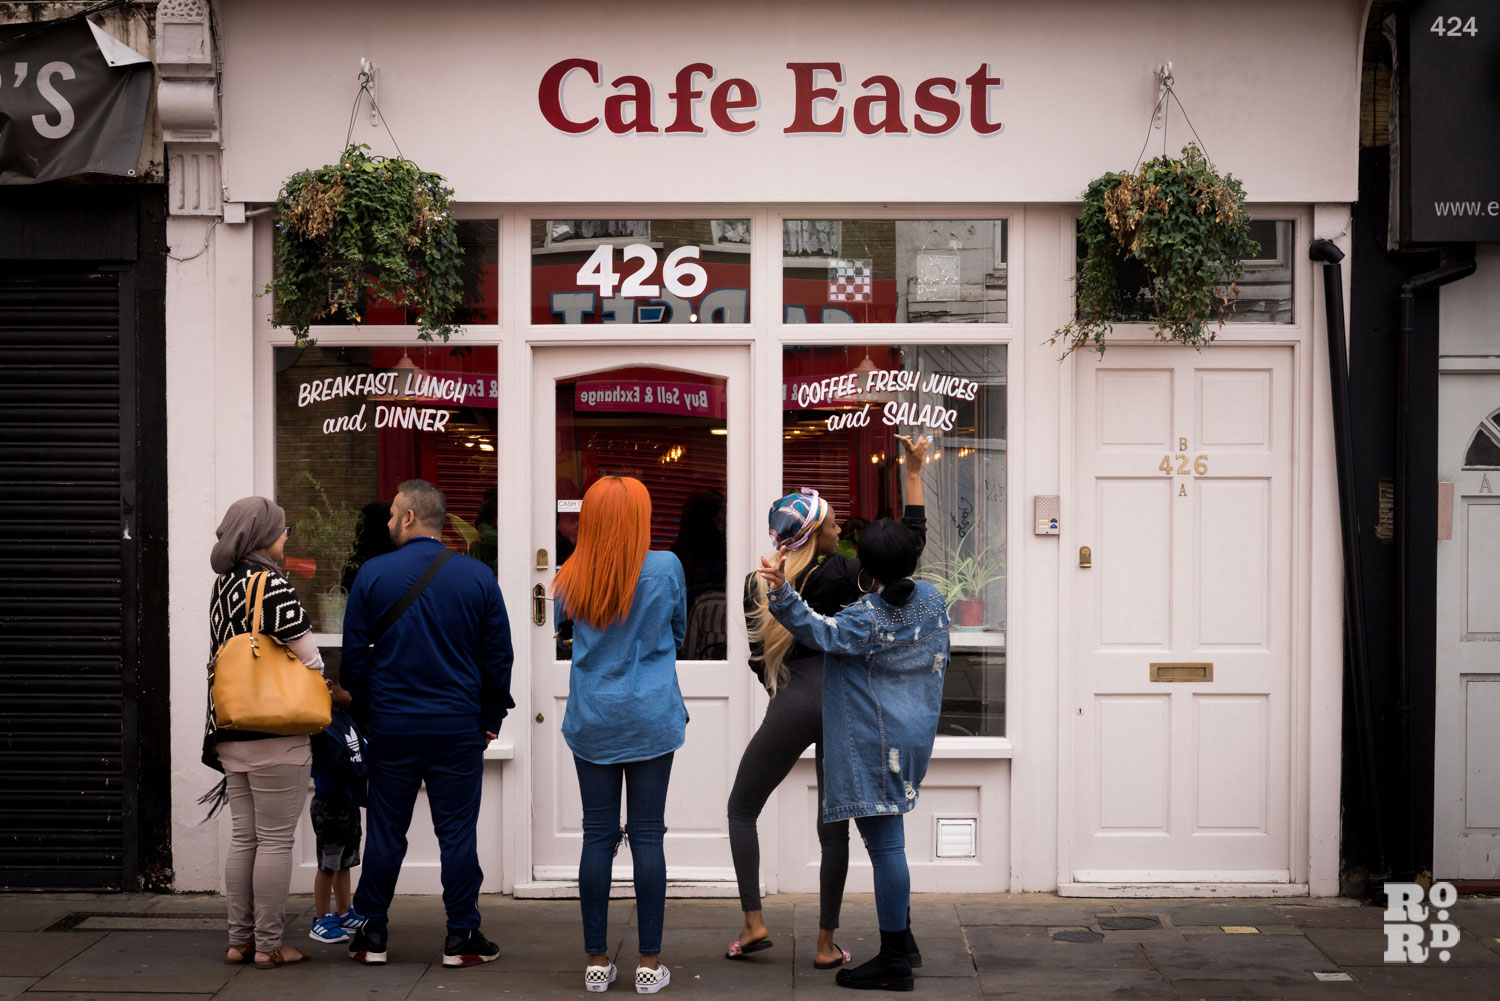 People outside cafe east roman road london